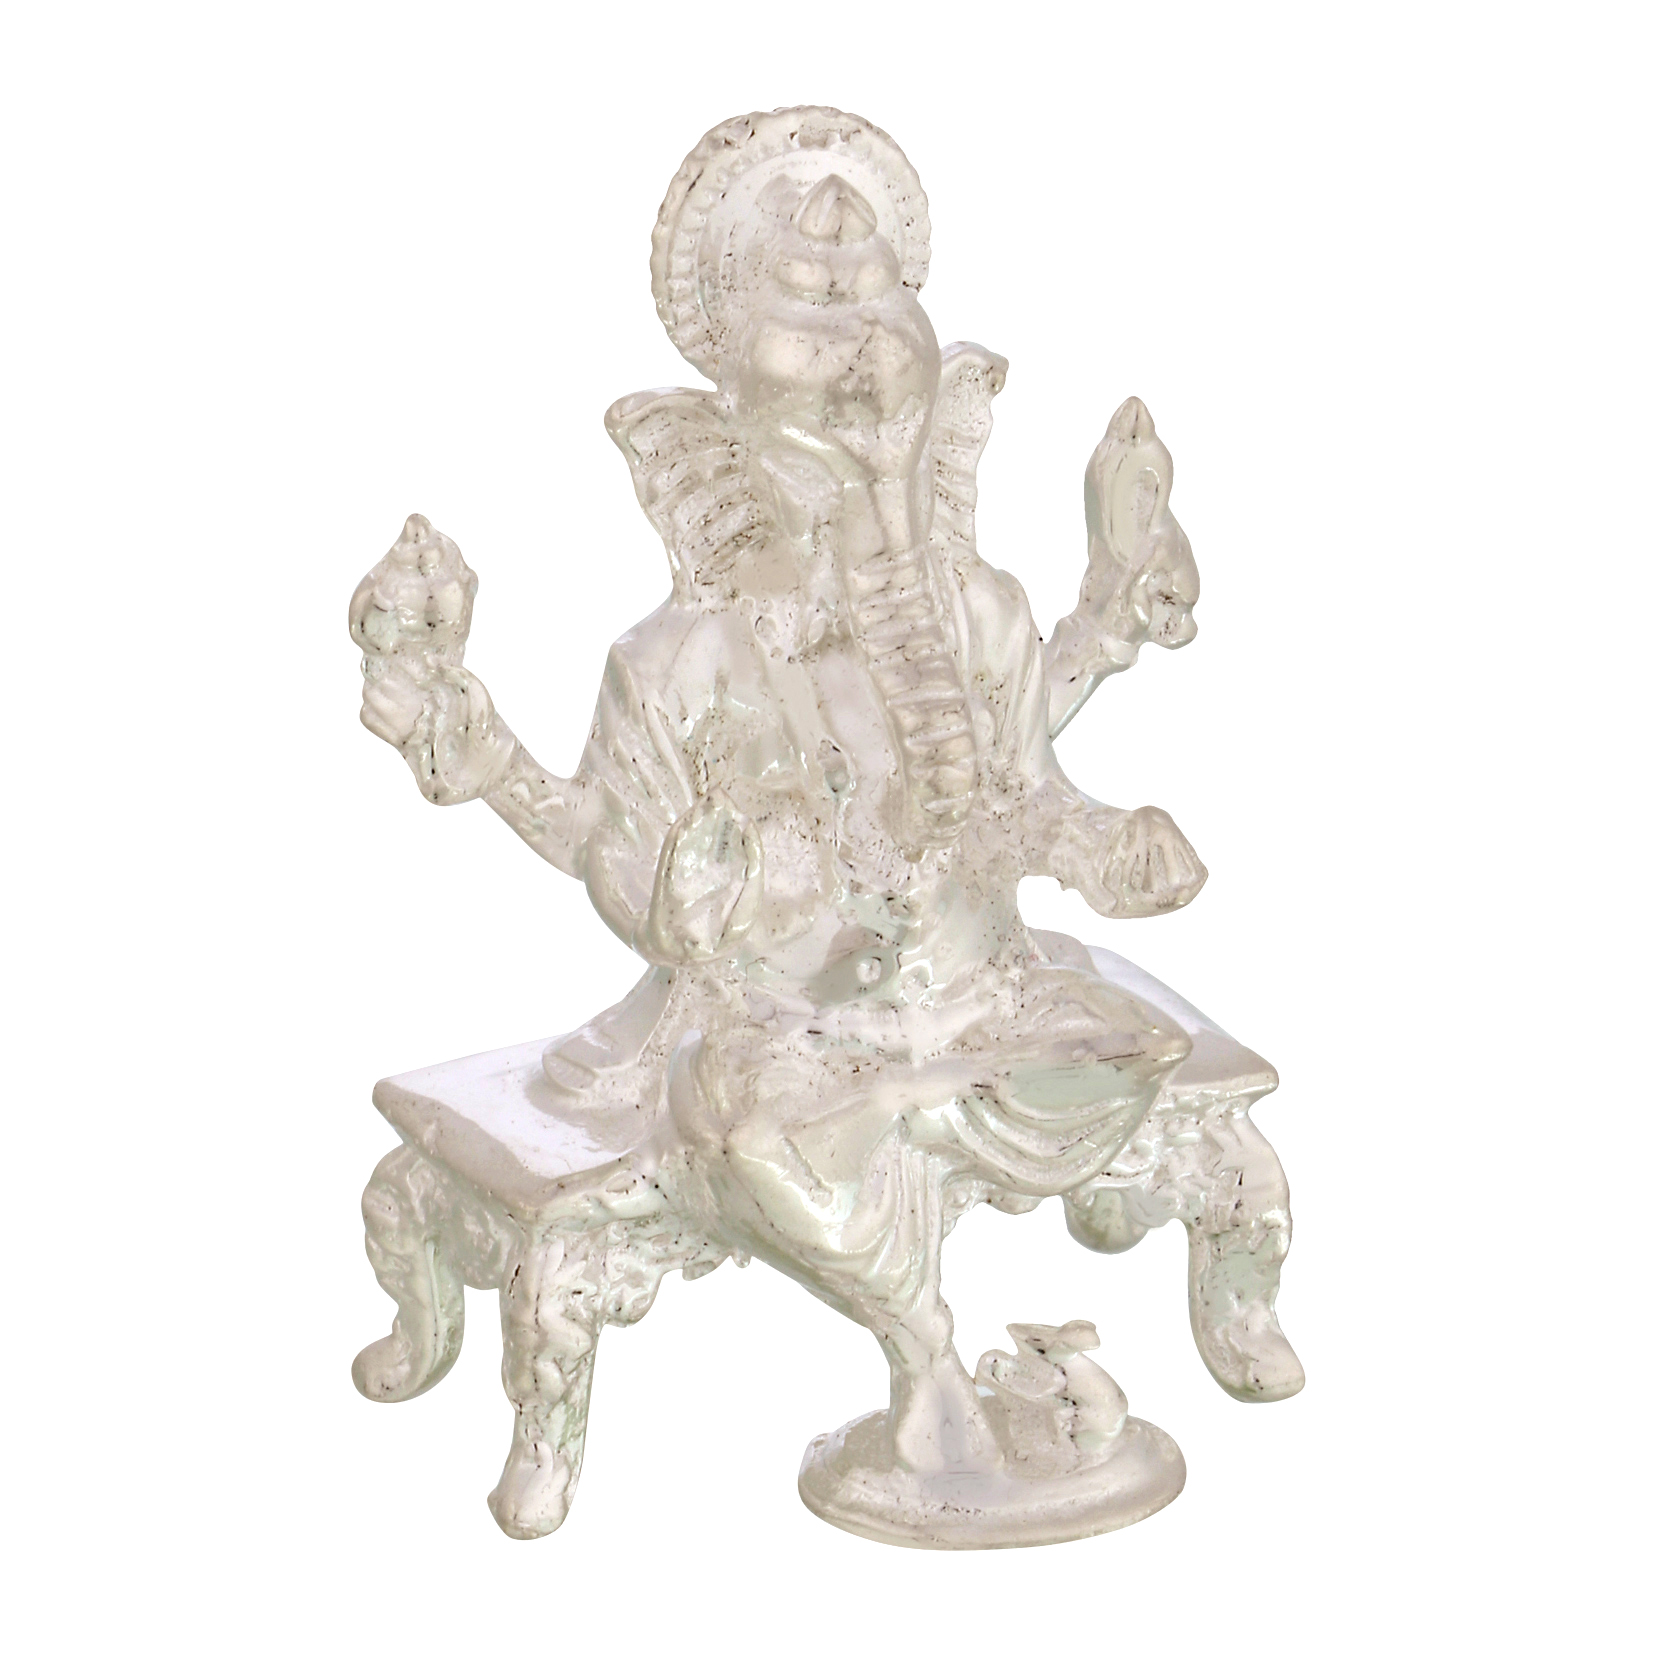 Ganesh ji in Silver by Osasbazaar Left